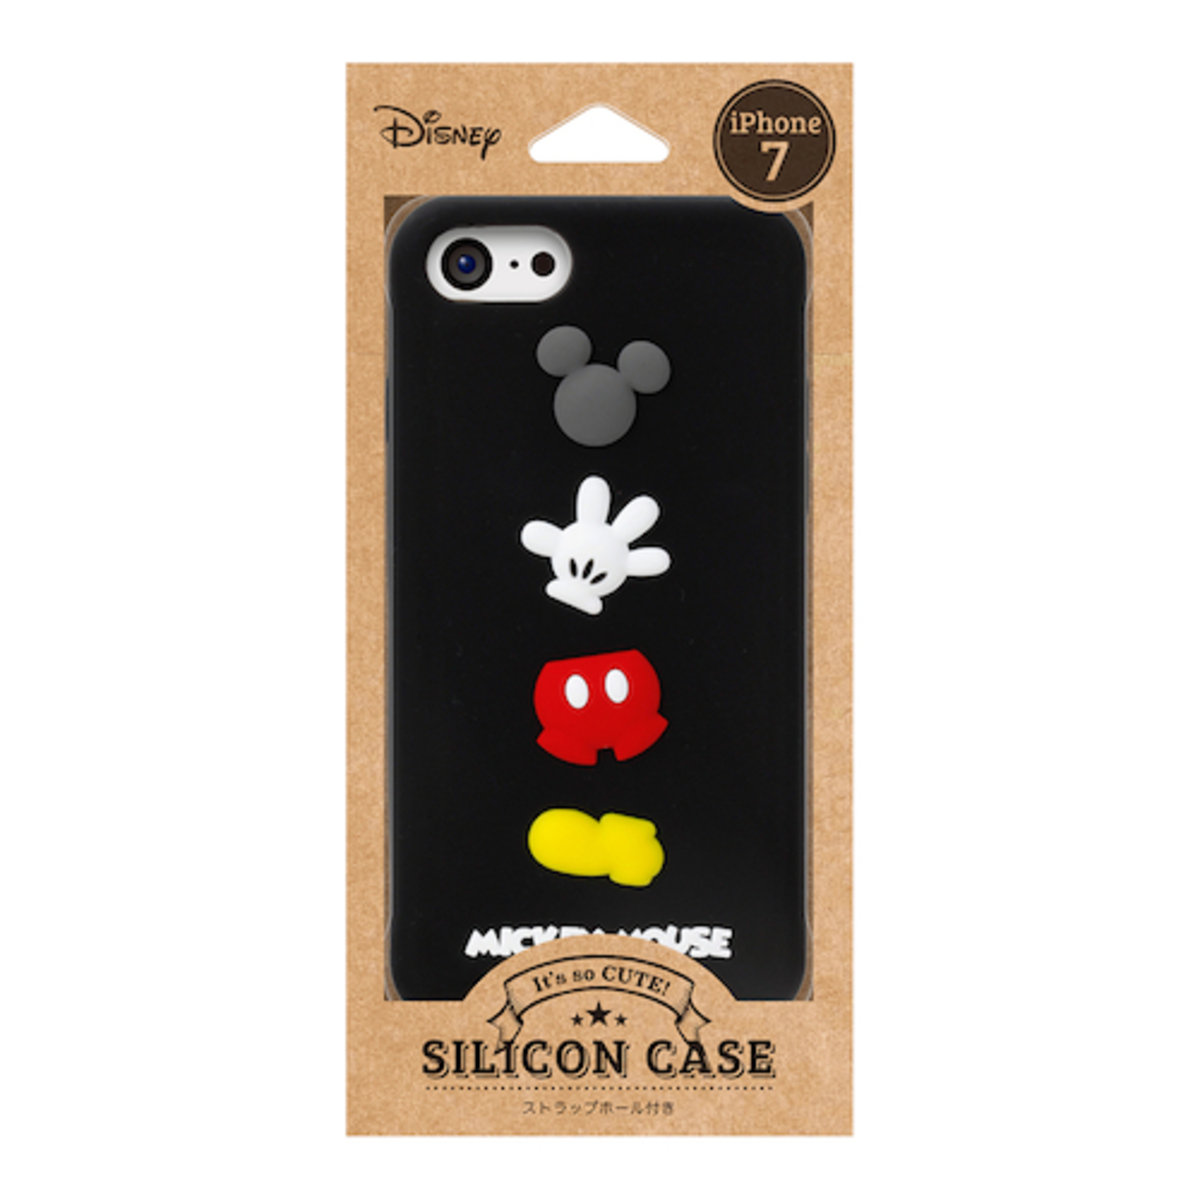 iPhone 7 / iPhone 8 Disney Mickey Silicon Phone Case DCS143MKY